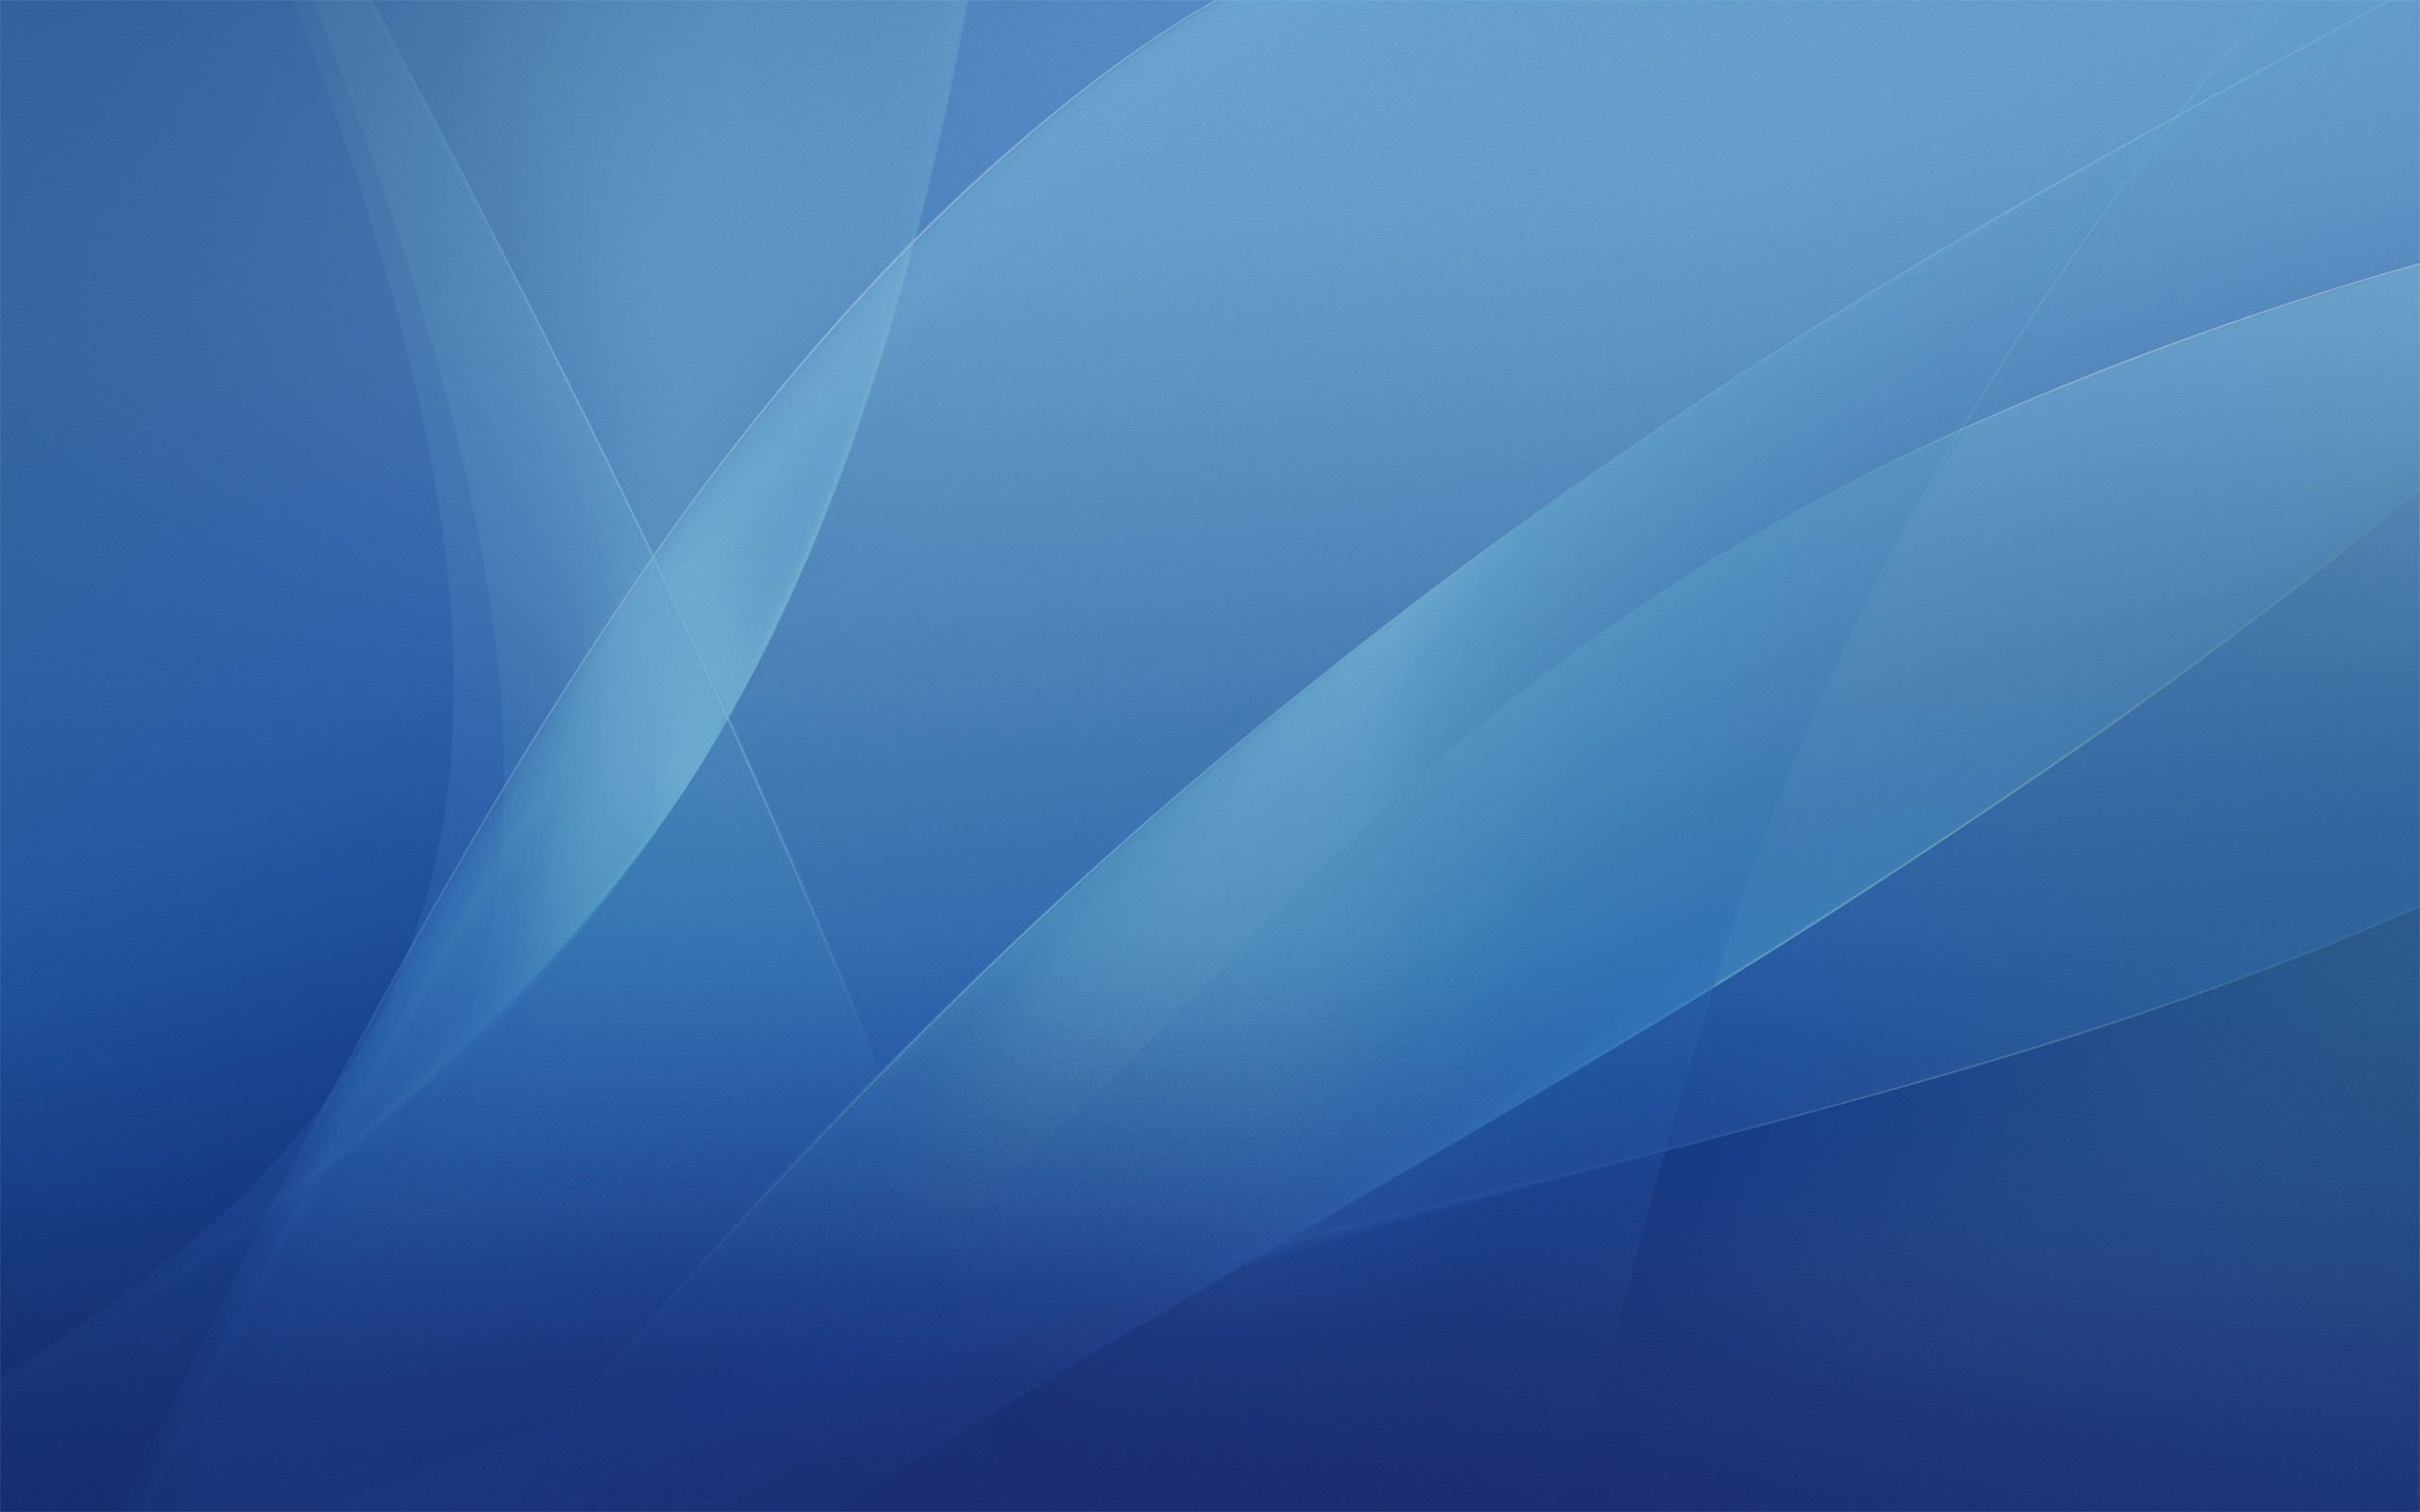 blueprint wallpaper for mac os x mavericks y recoxblazer